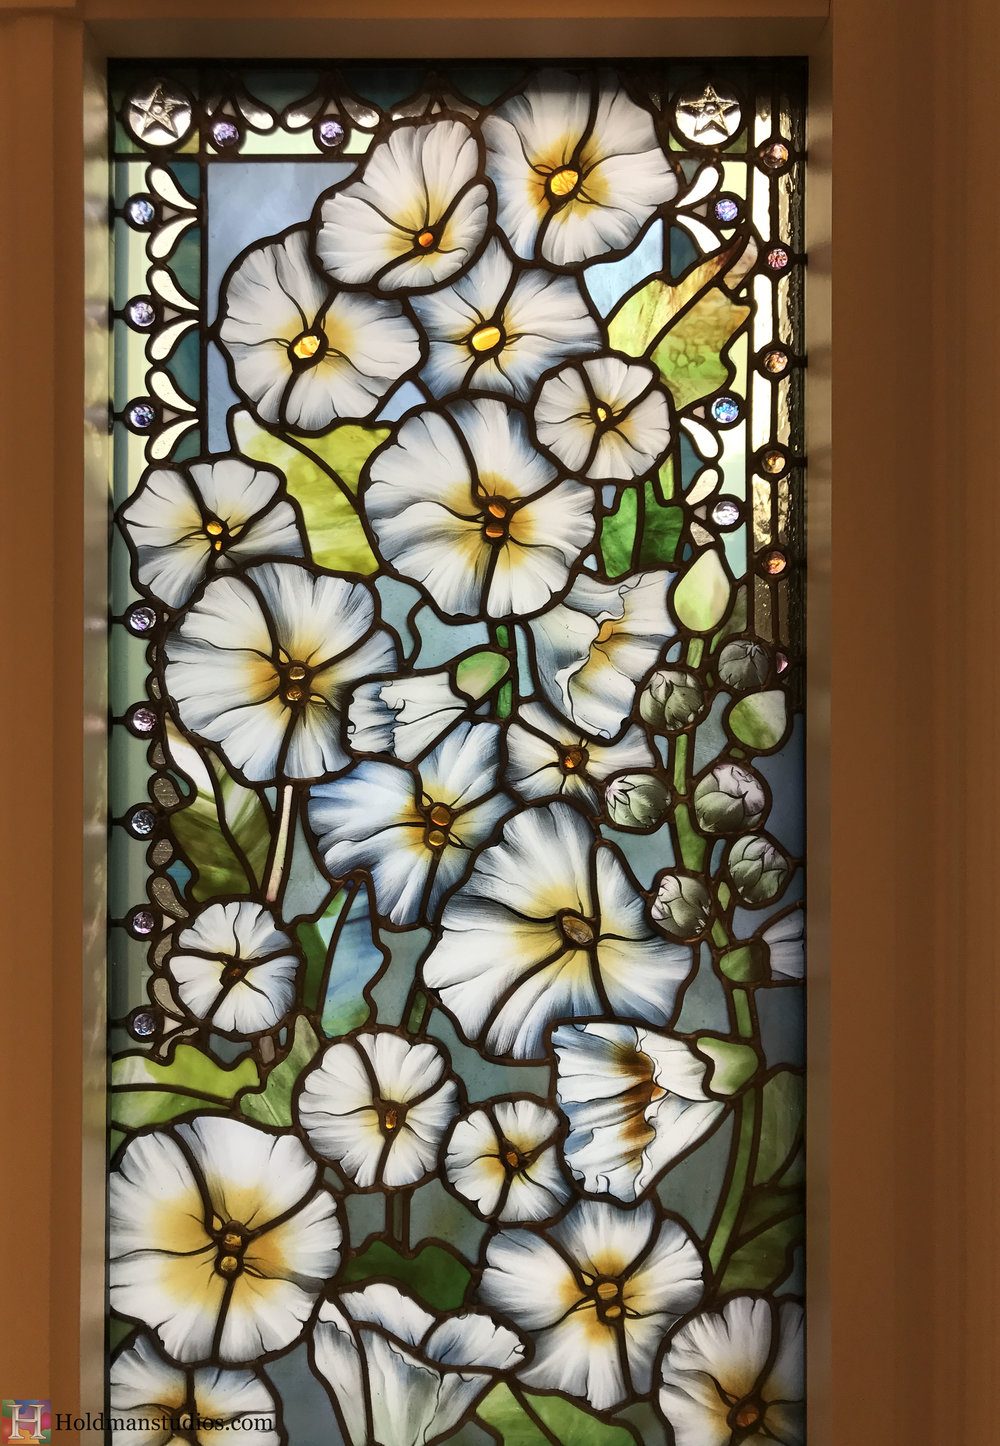 Holdman-Studios-Stained-Glass-Paris-LDS-Temple-Cornflower-Blue-Lily-Flowers-Buds-Leaves-Stars-Closeup-Windows.jpg